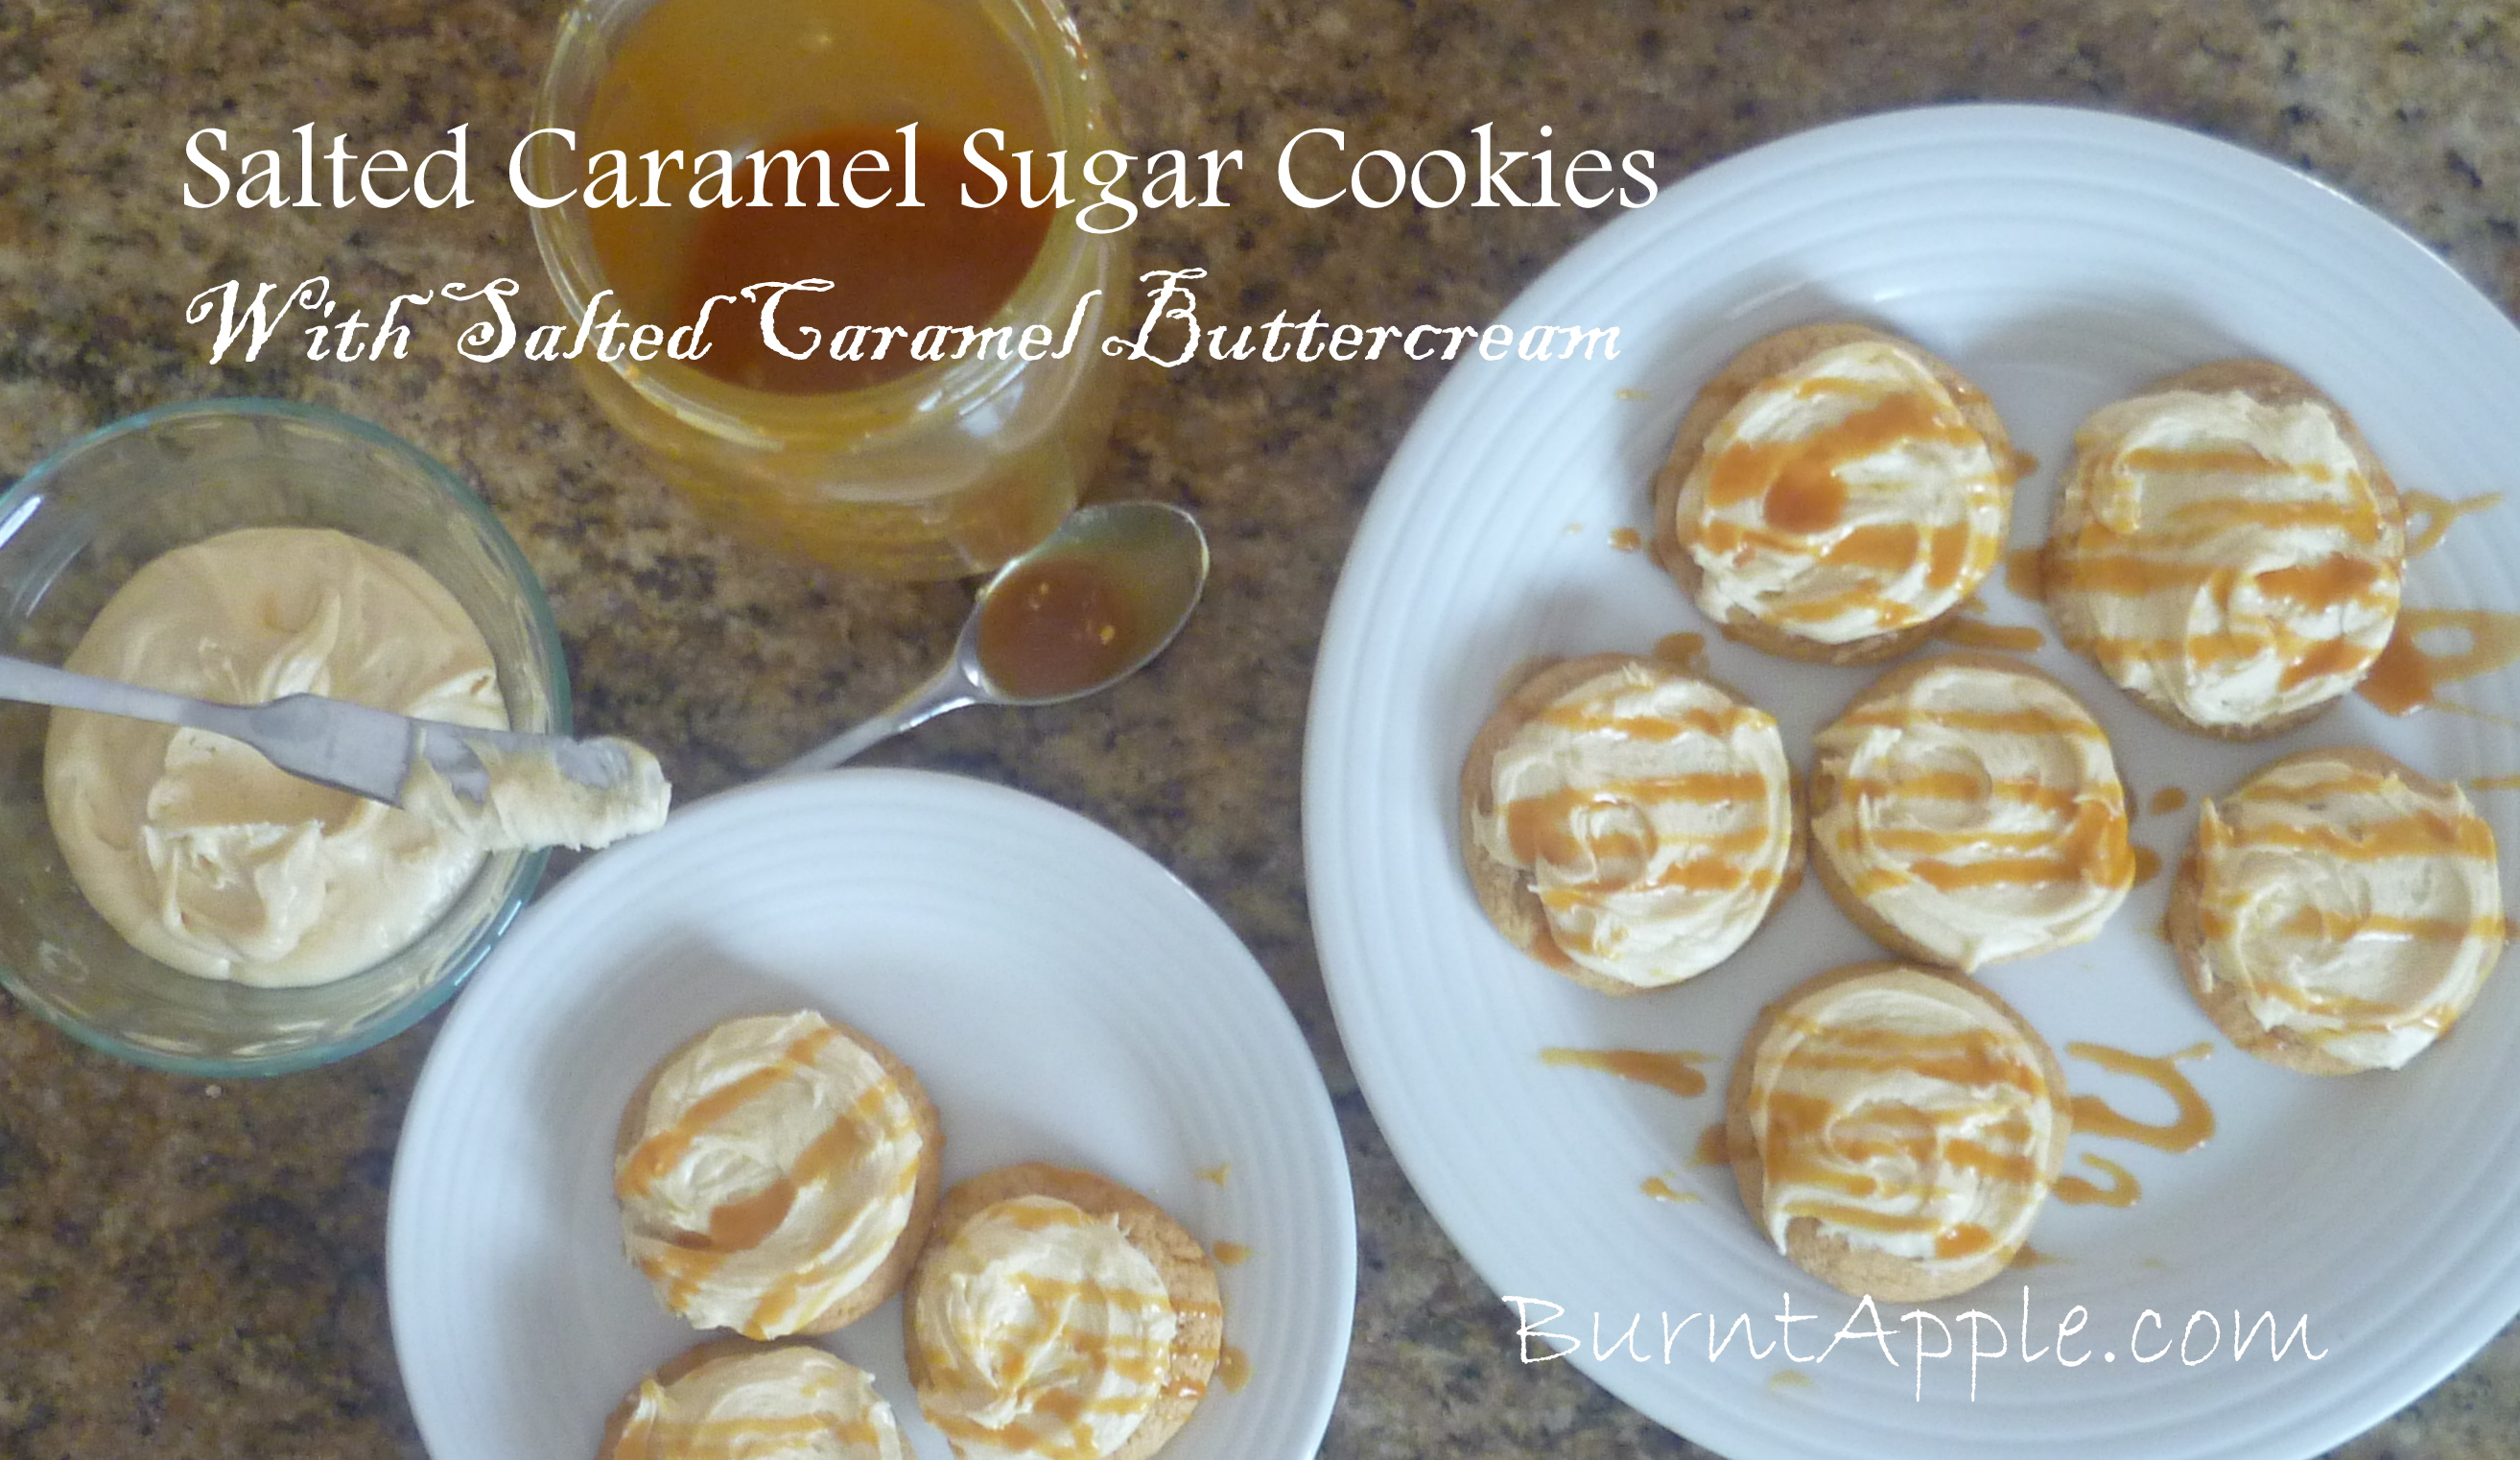 Salted Caramel Sugar Cookies with Salted Caramel Buttercream Frosting